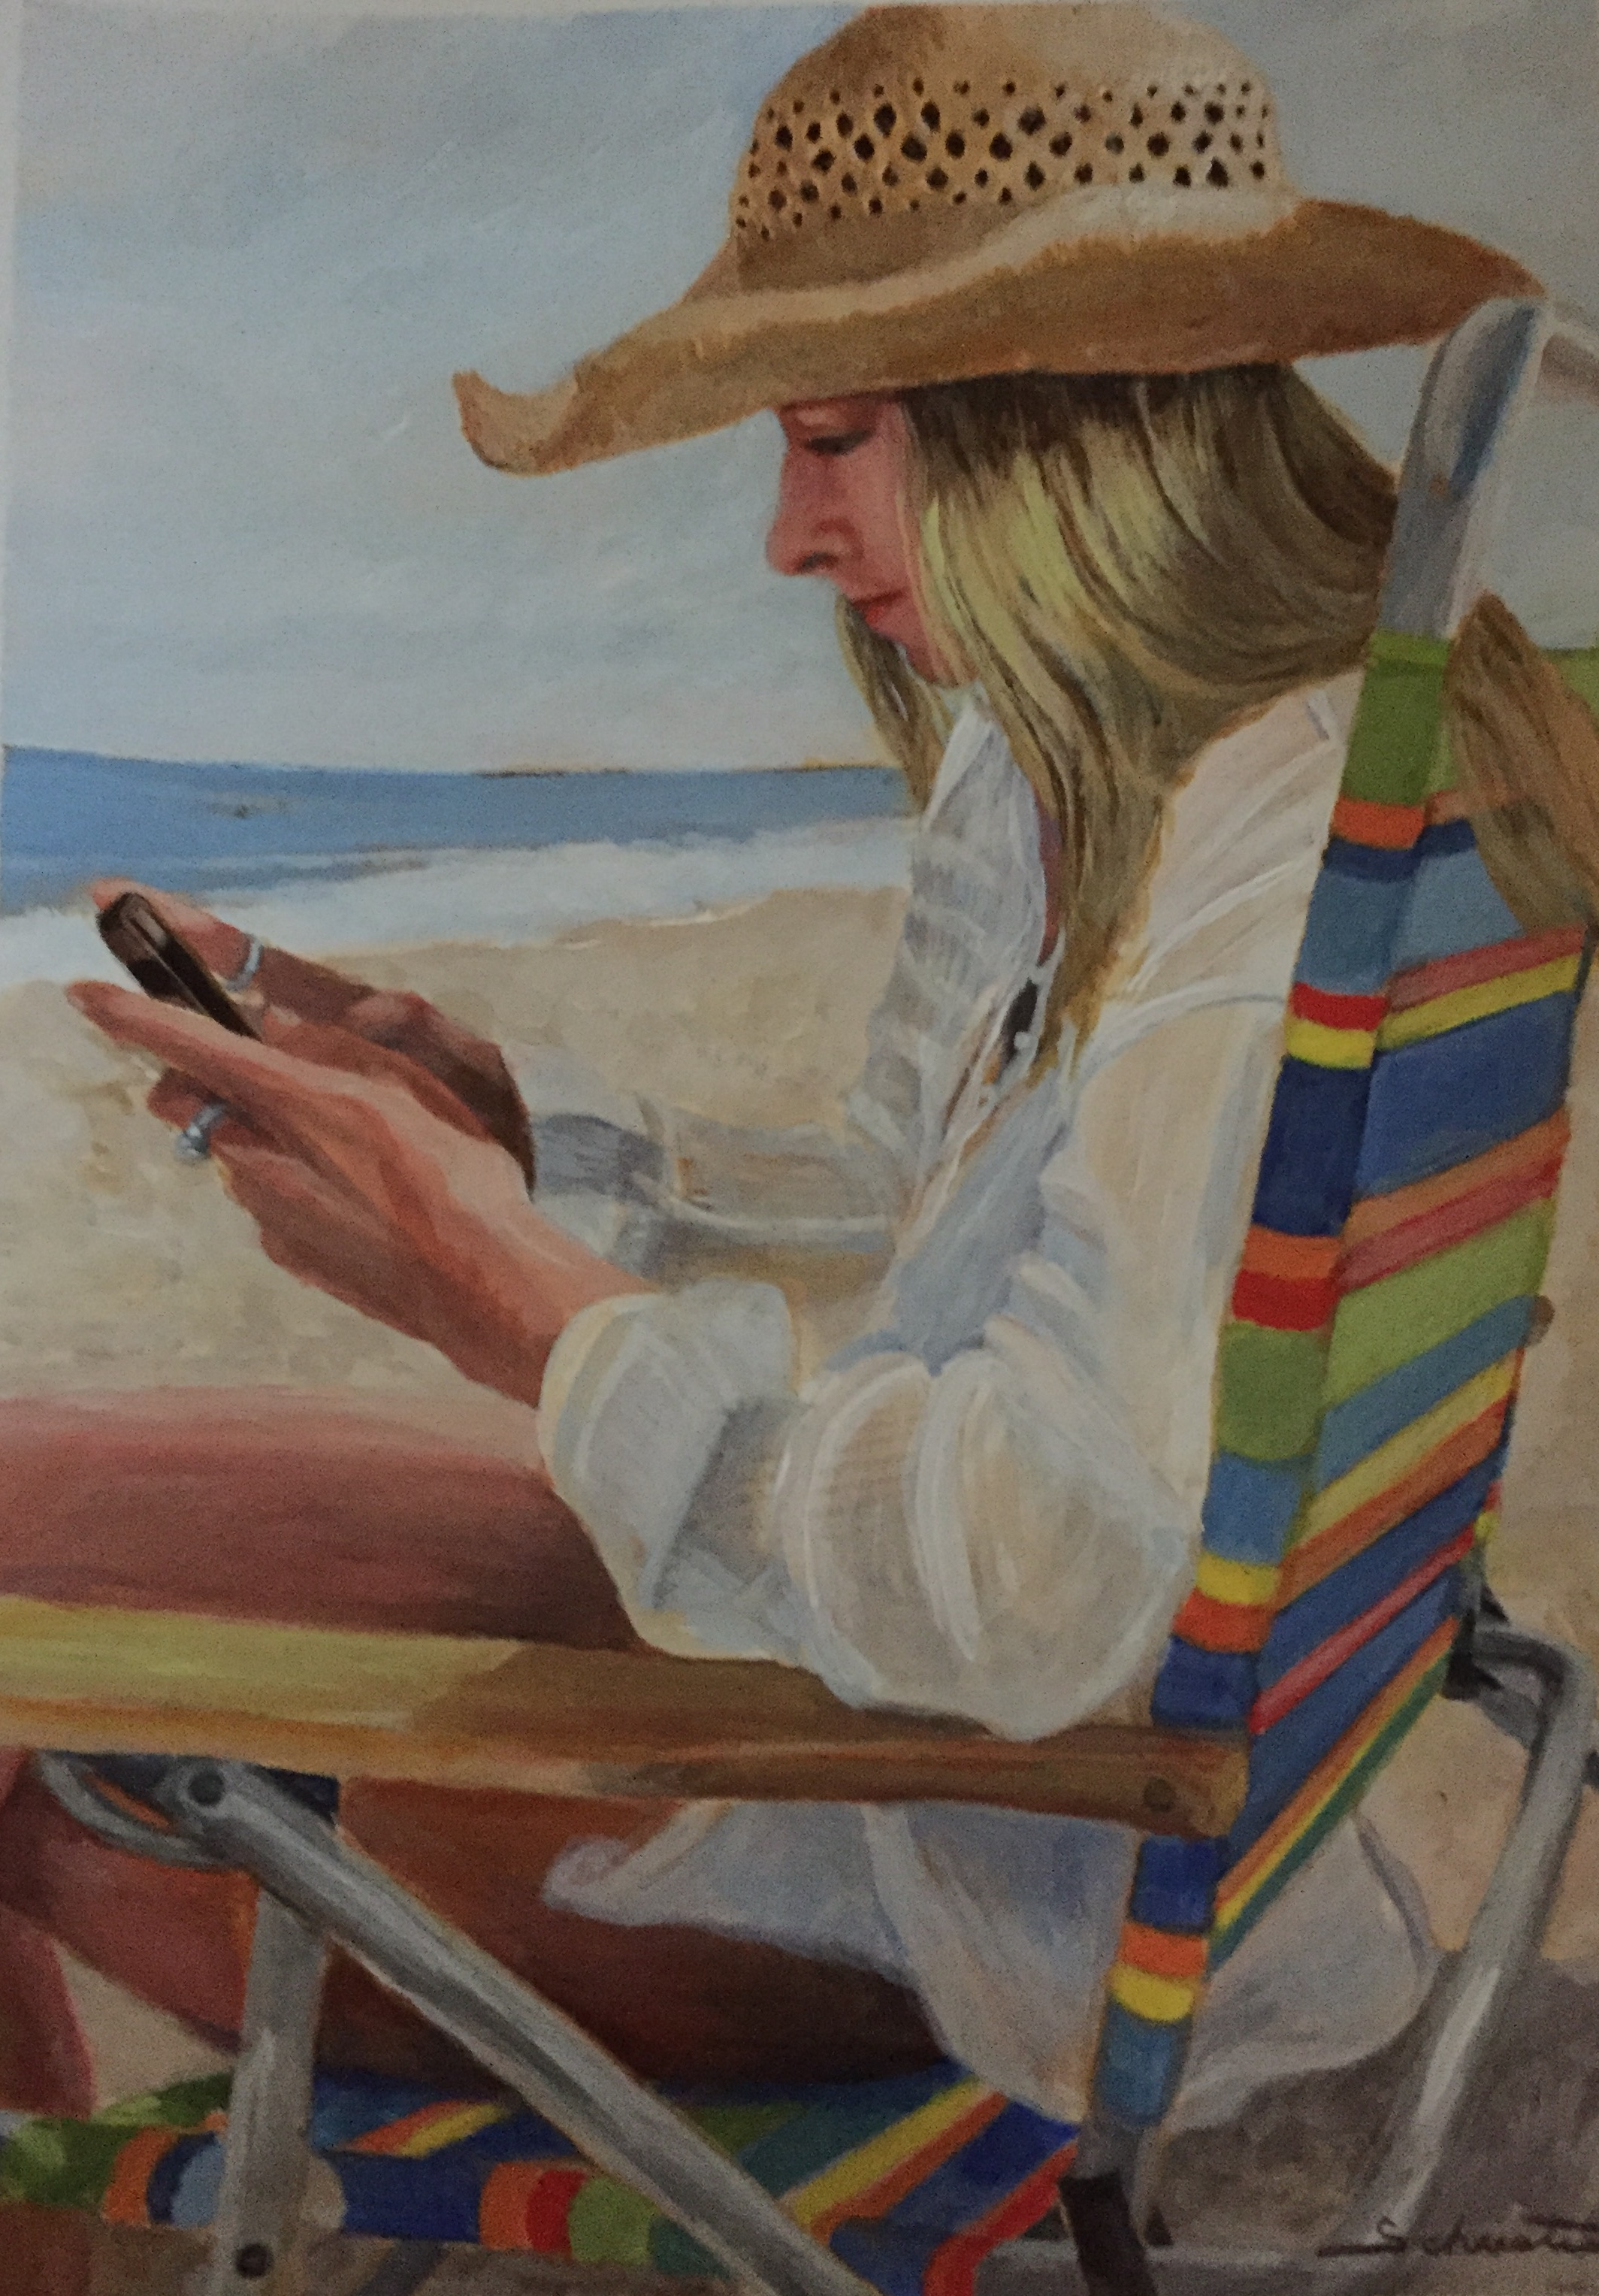 Painting of a girl in a straw hat sitting on the beach